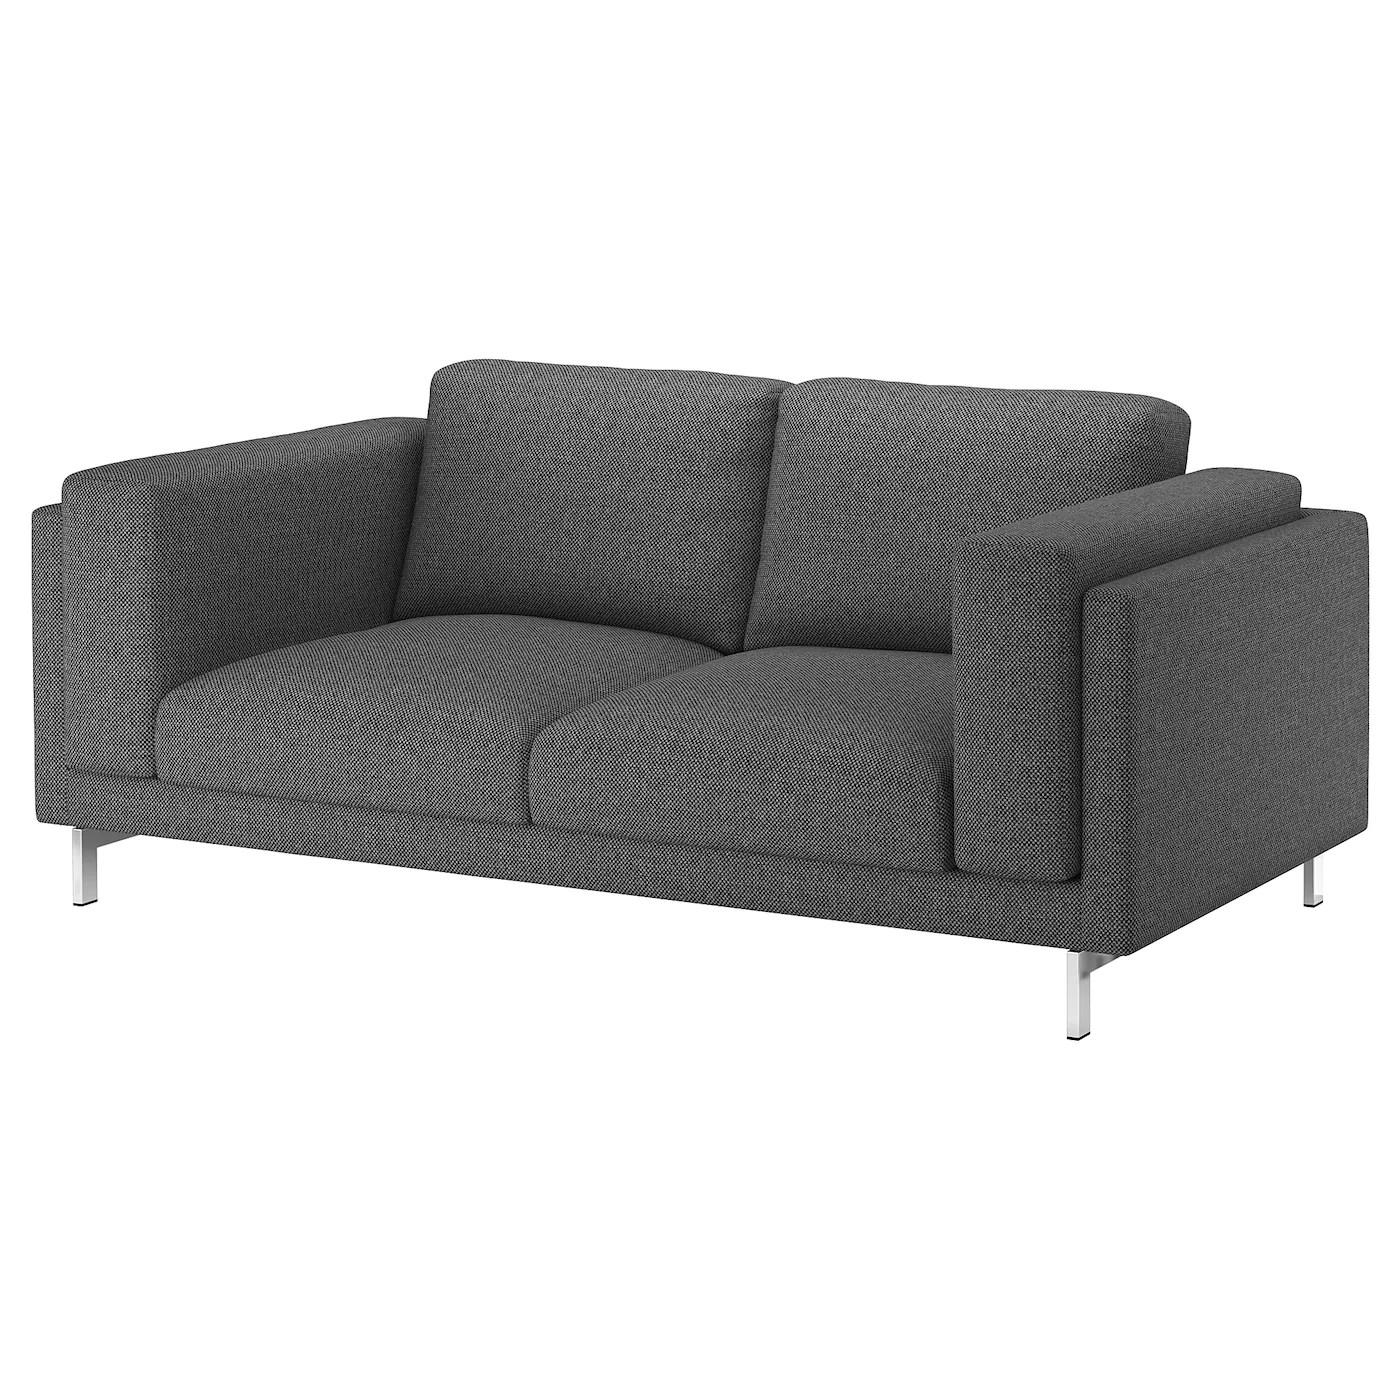 Ikea Sofa Nockeby Test Nockeby Two Seat Sofa Lejde Dark Grey Chrome Plated Ikea